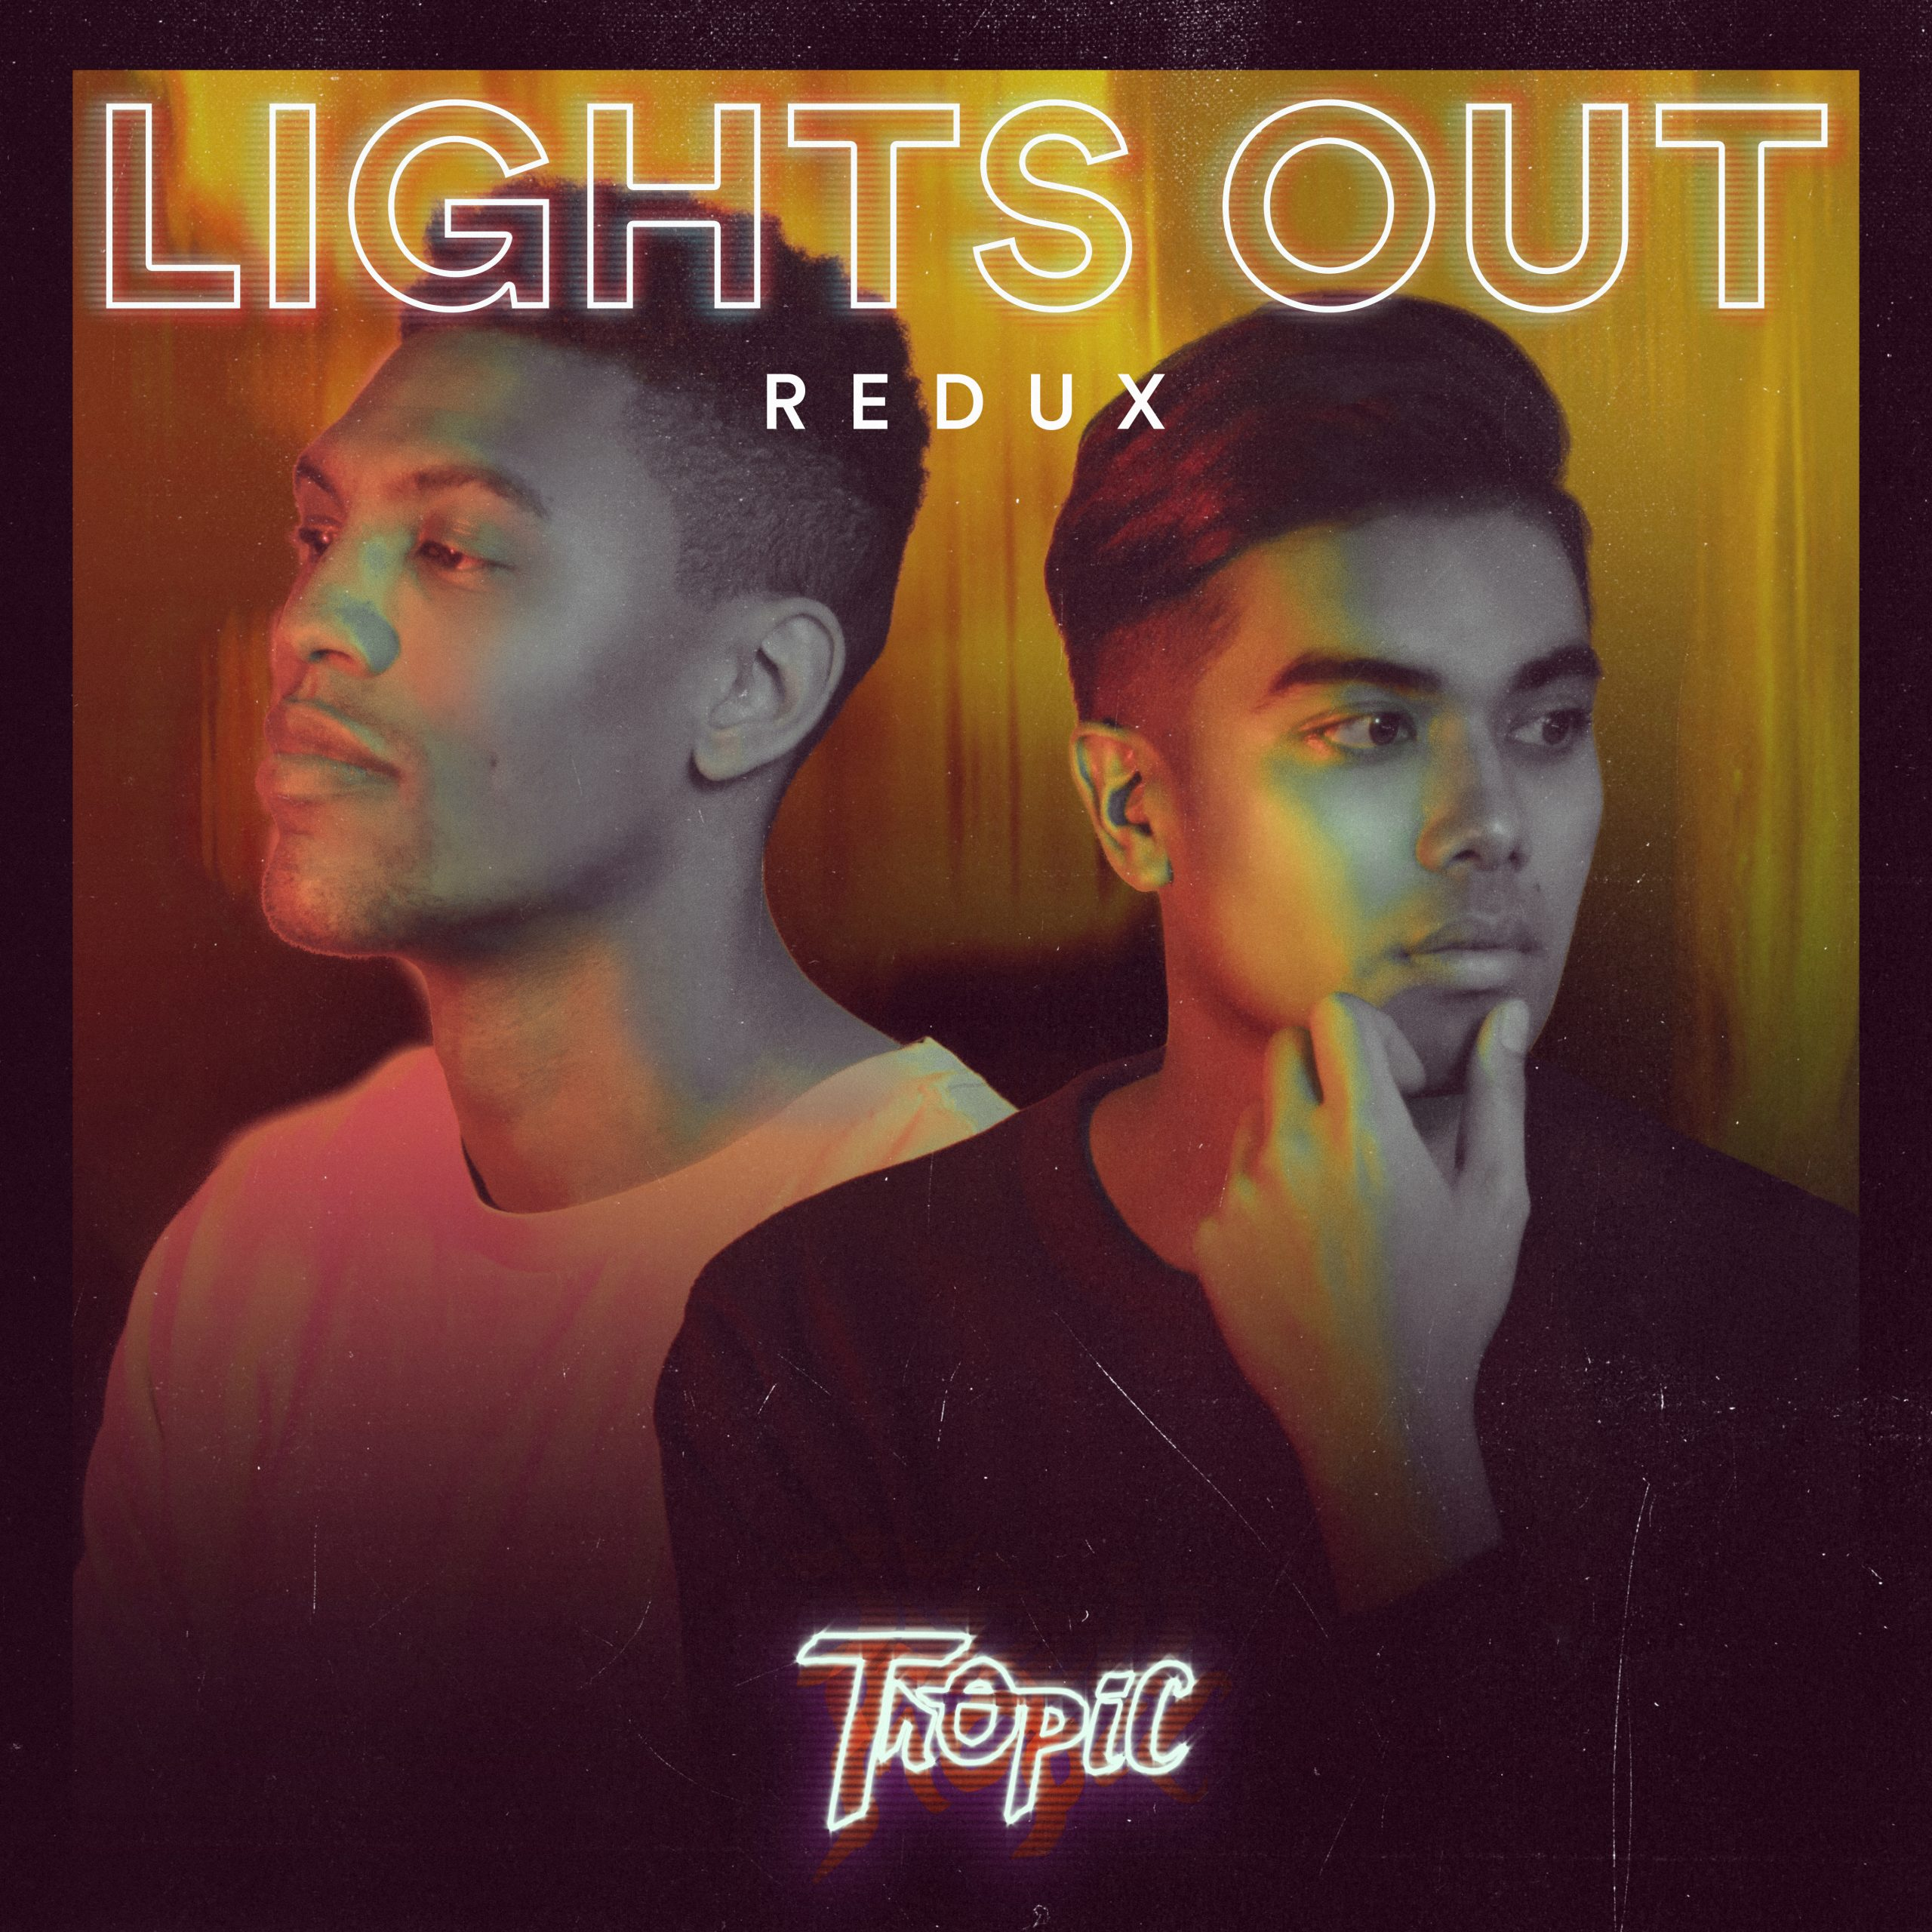 TRACK PREMIERE: Tropic - Lights Out (Redux)